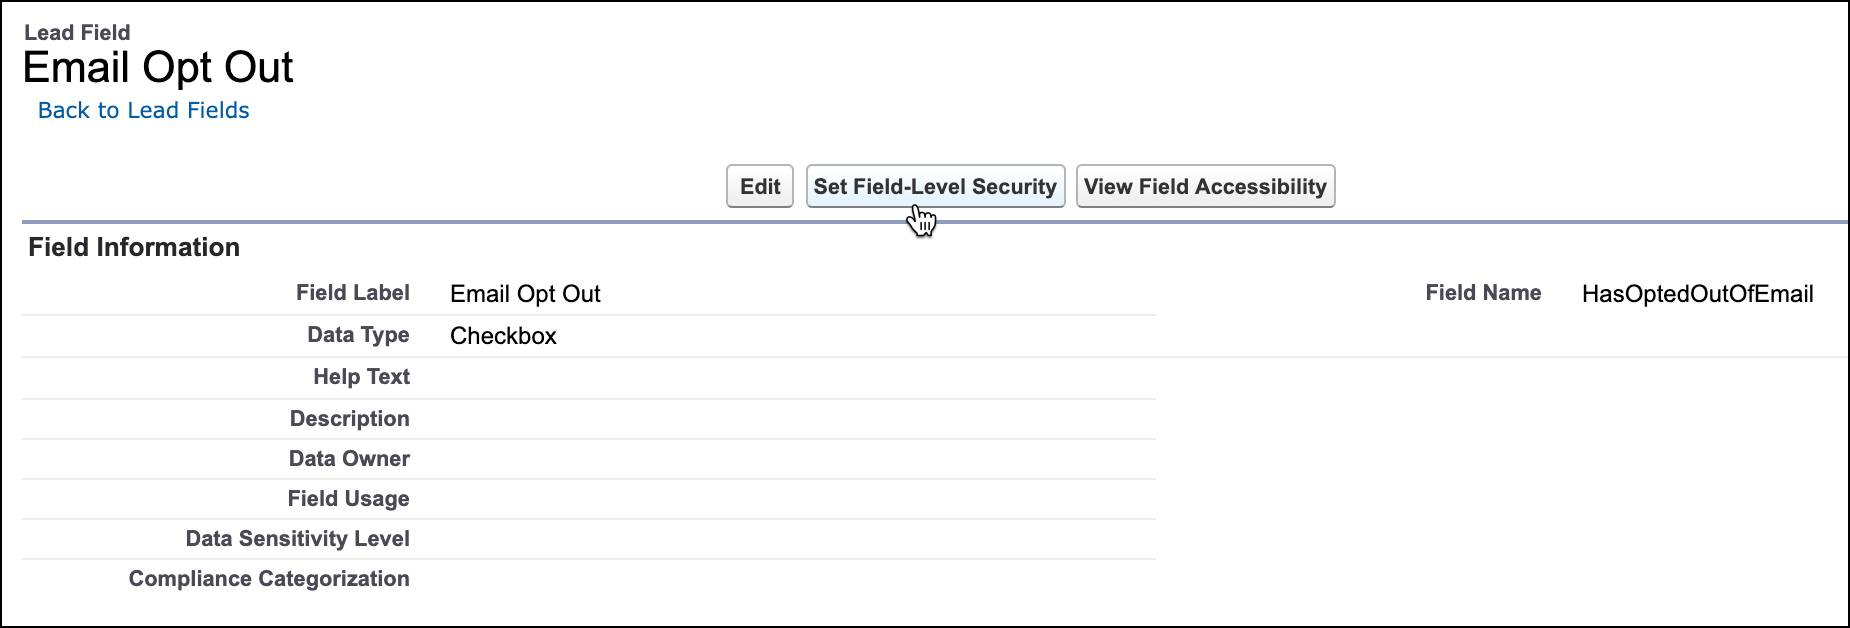 Email opt out lead field with set field-level security button selected.